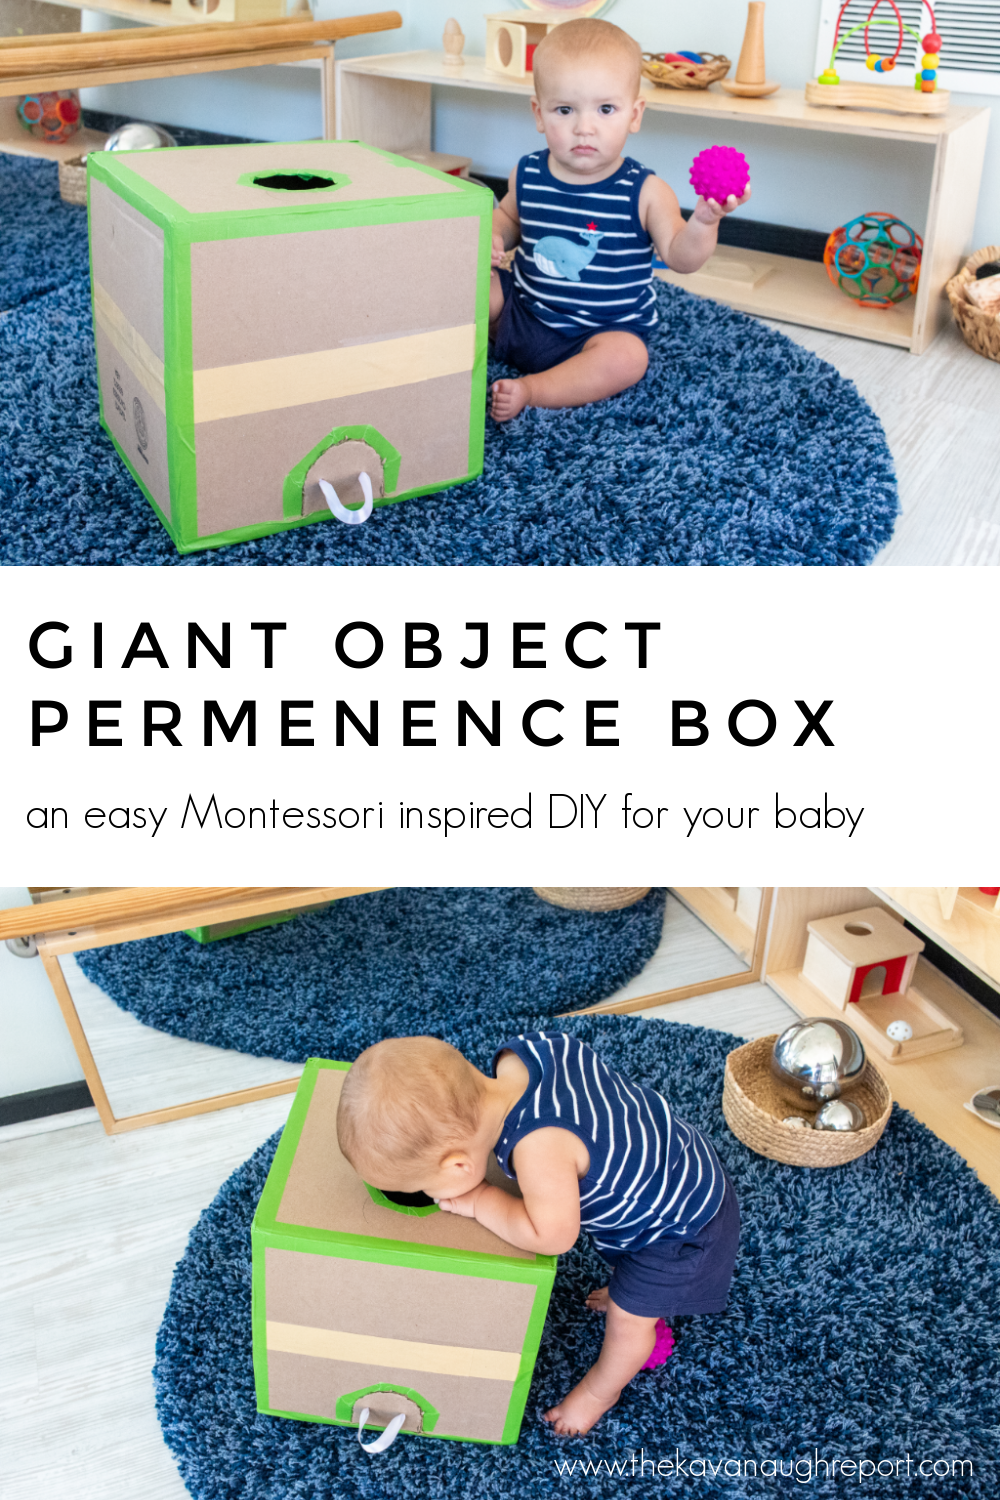 This  Montessori baby DIY is an easy way to entertain and play with your baby while making learning fun.